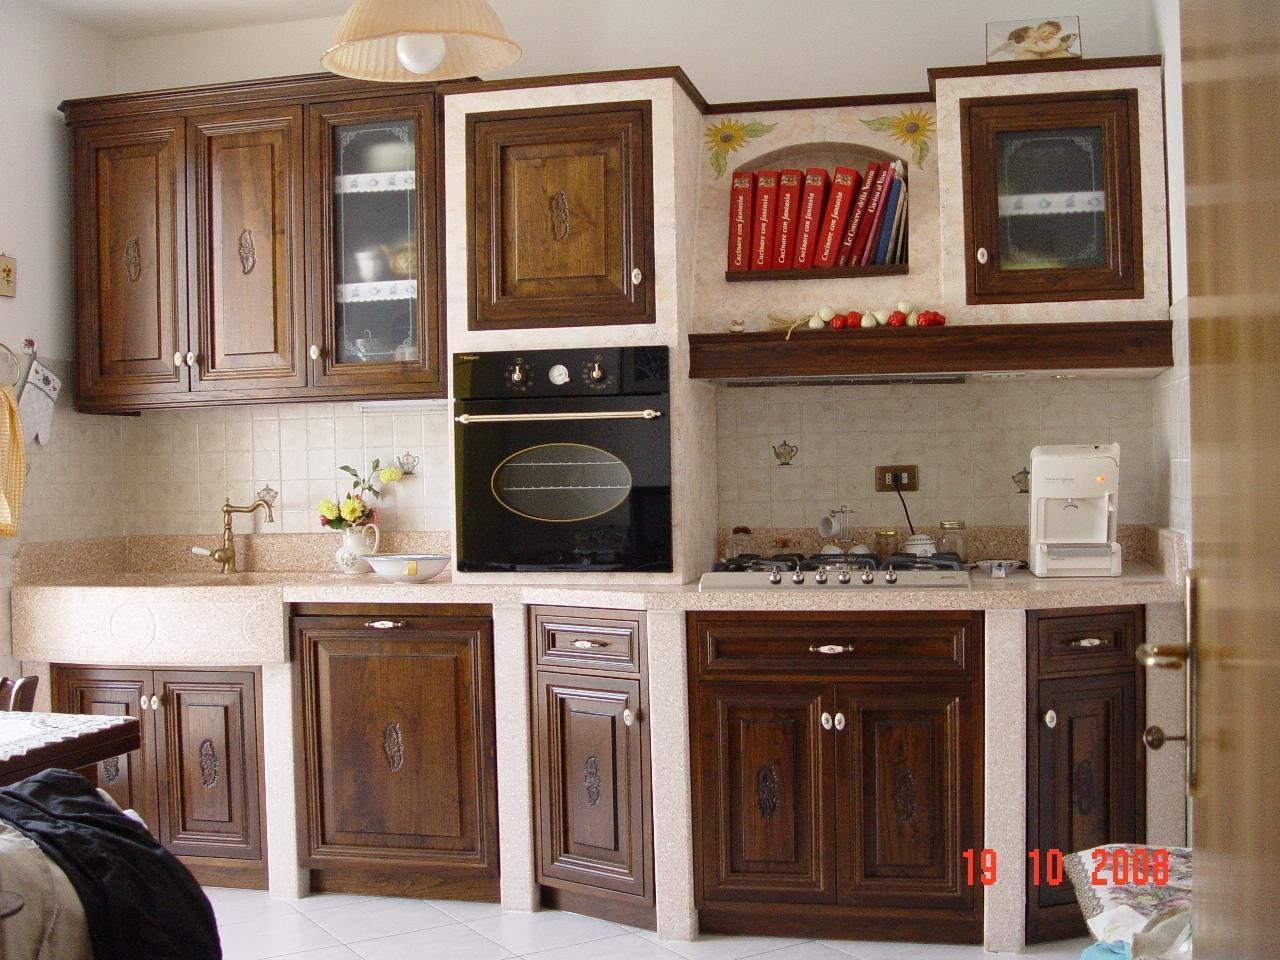 Progetto Cucina Completa Country Azzurra Idee Armadi Pictures to pin ...